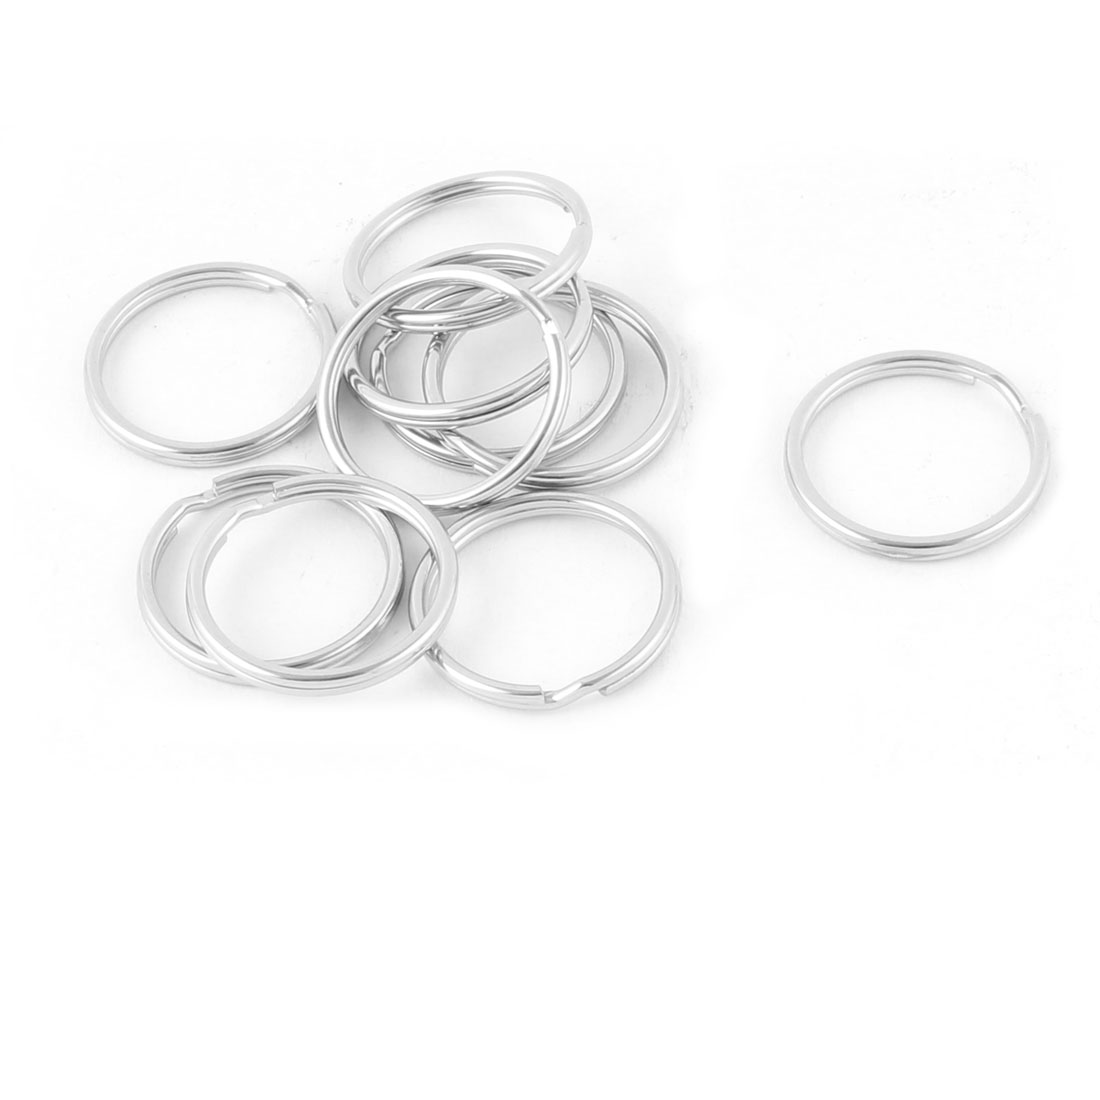 Home Hiking Stainless Steel Round Shaped Ring Keychain Keyring Holder 10pcs